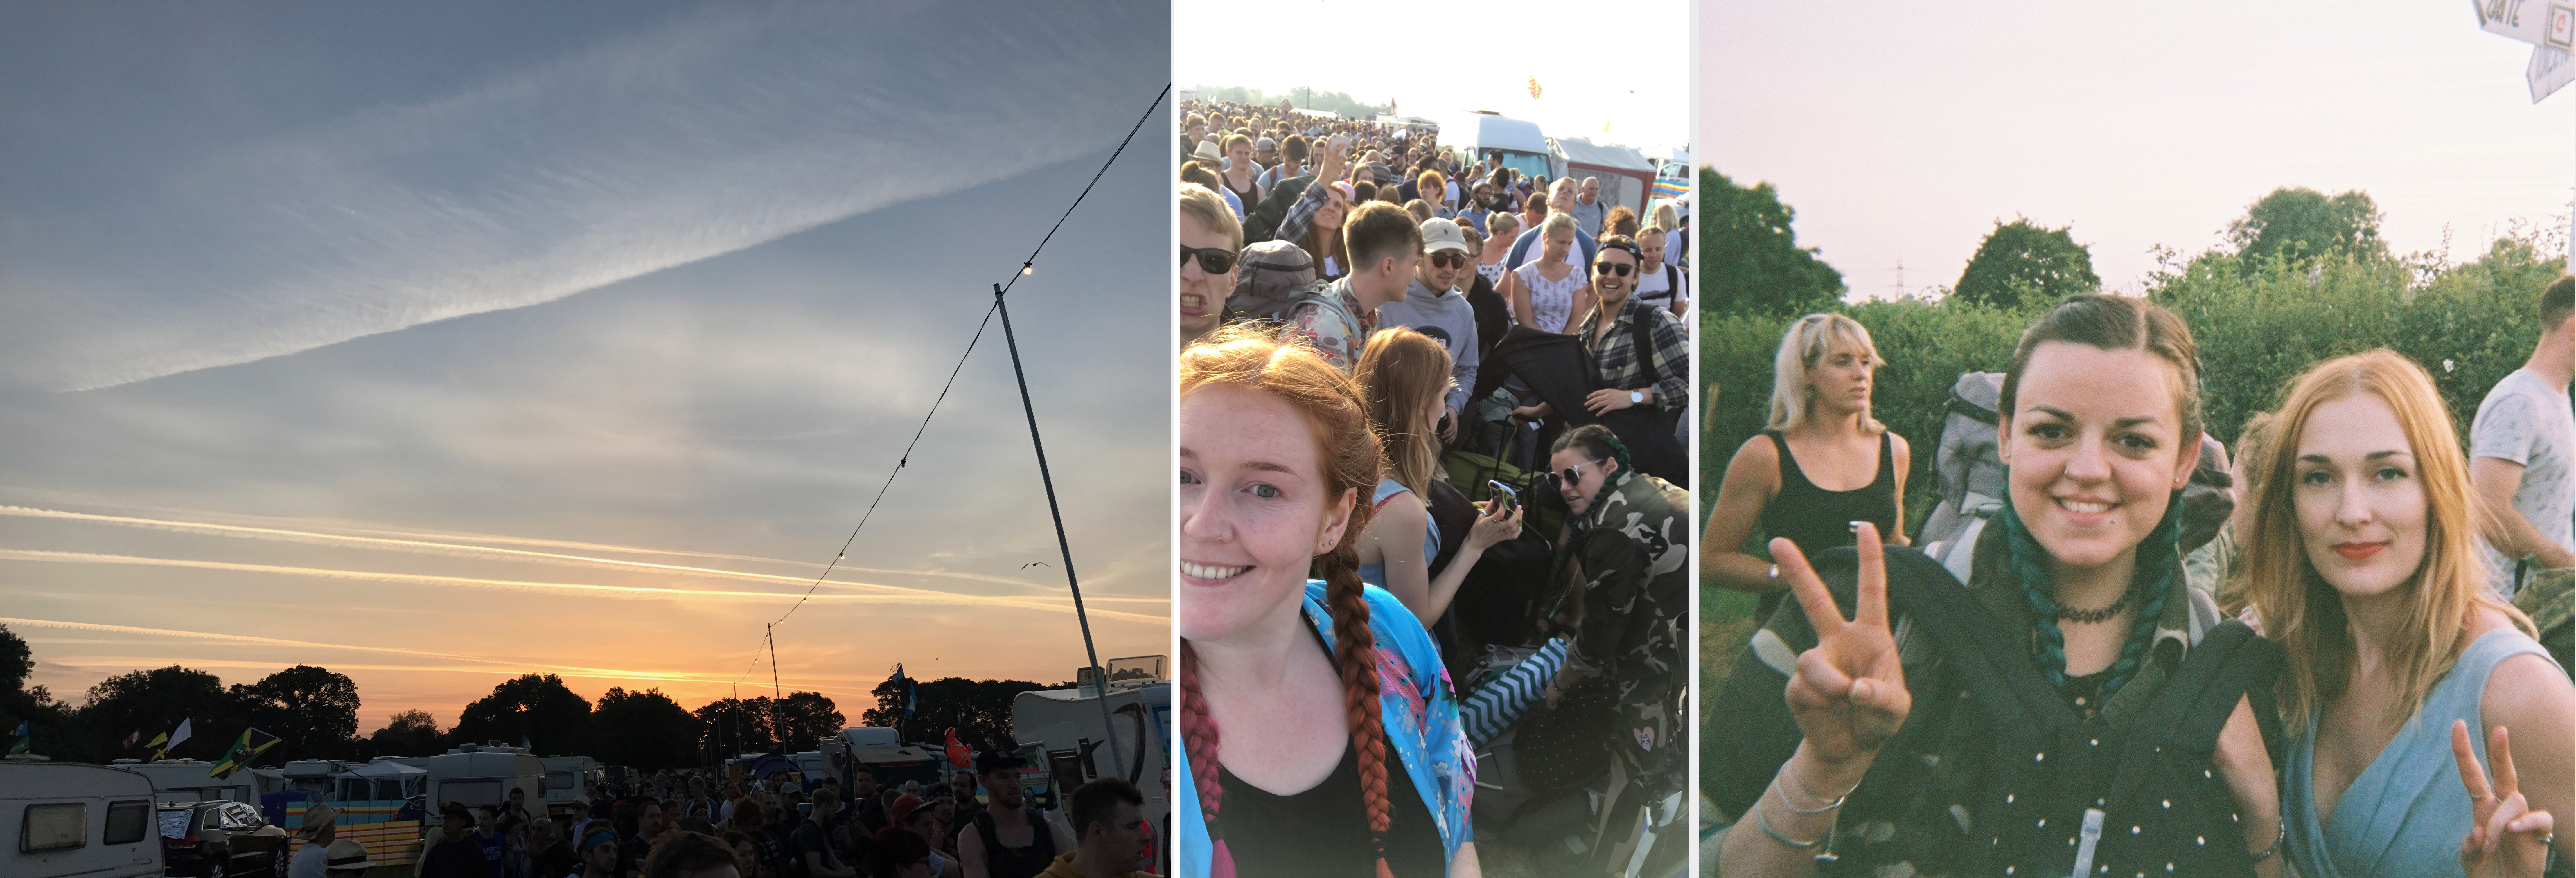 Waiting in the queue watching the sunrise on the first morning of Glastonbury